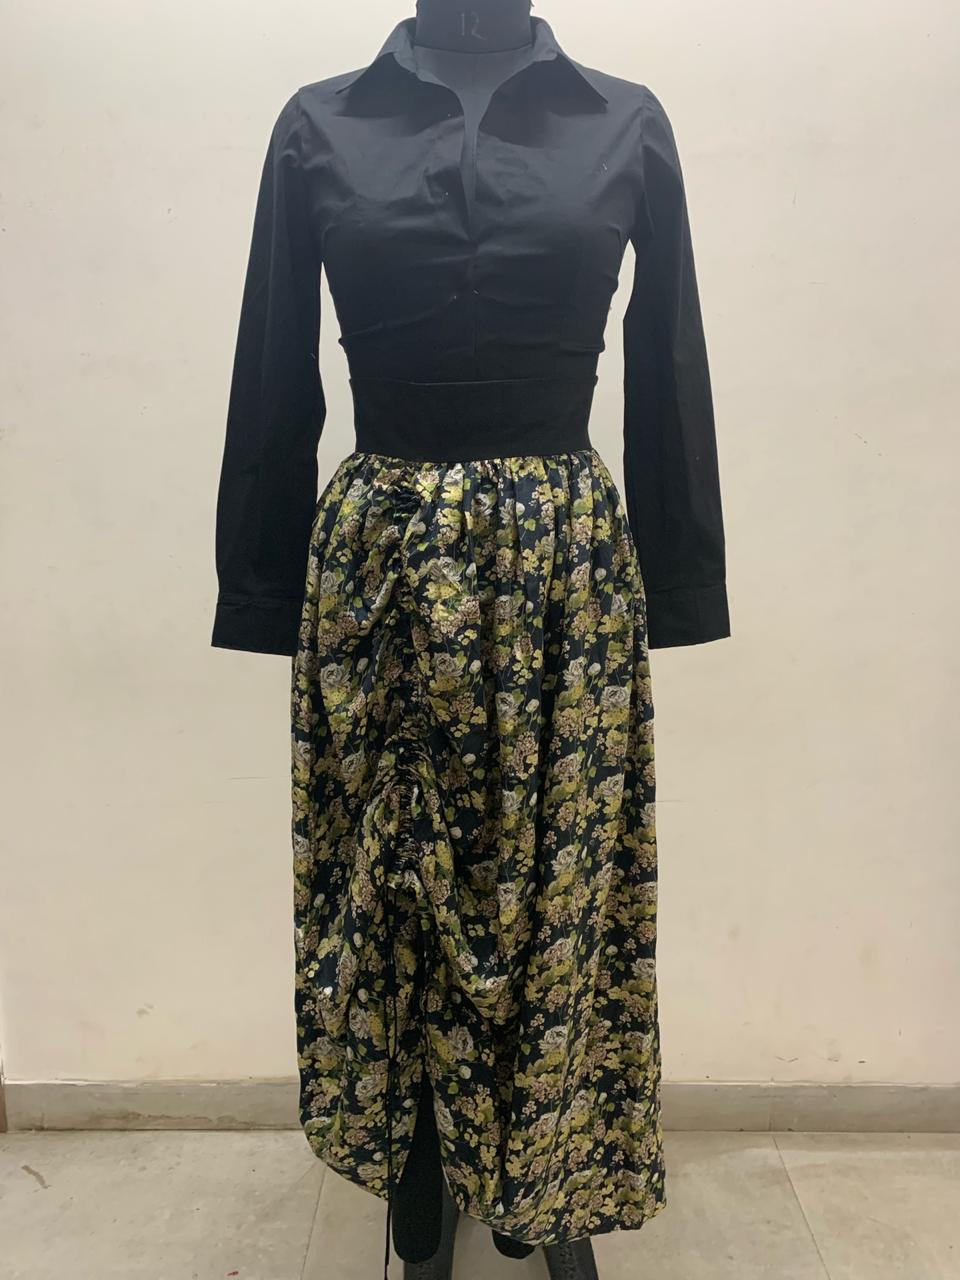 Lycra Shirt With Black Floral Printed Skirt - The Grand Trunk